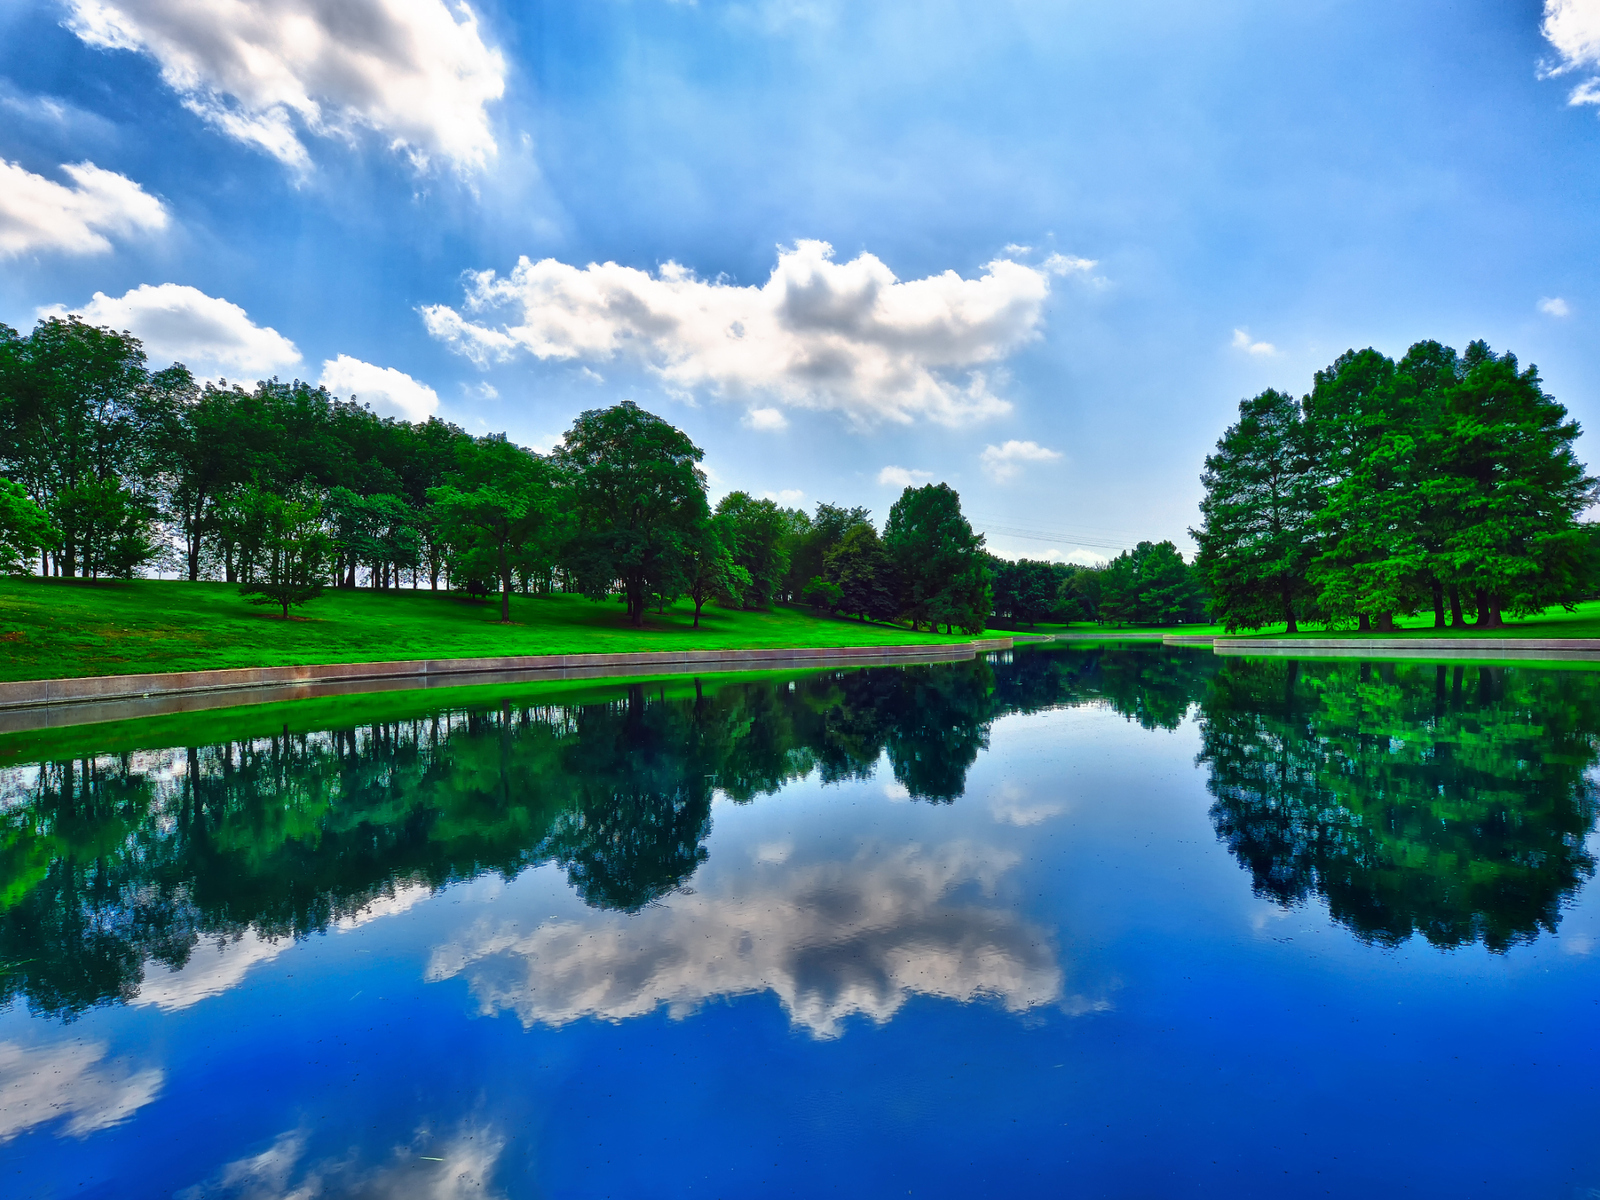 20712 download wallpaper Landscape, Rivers, Trees, Sky, Clouds screensavers and pictures for free